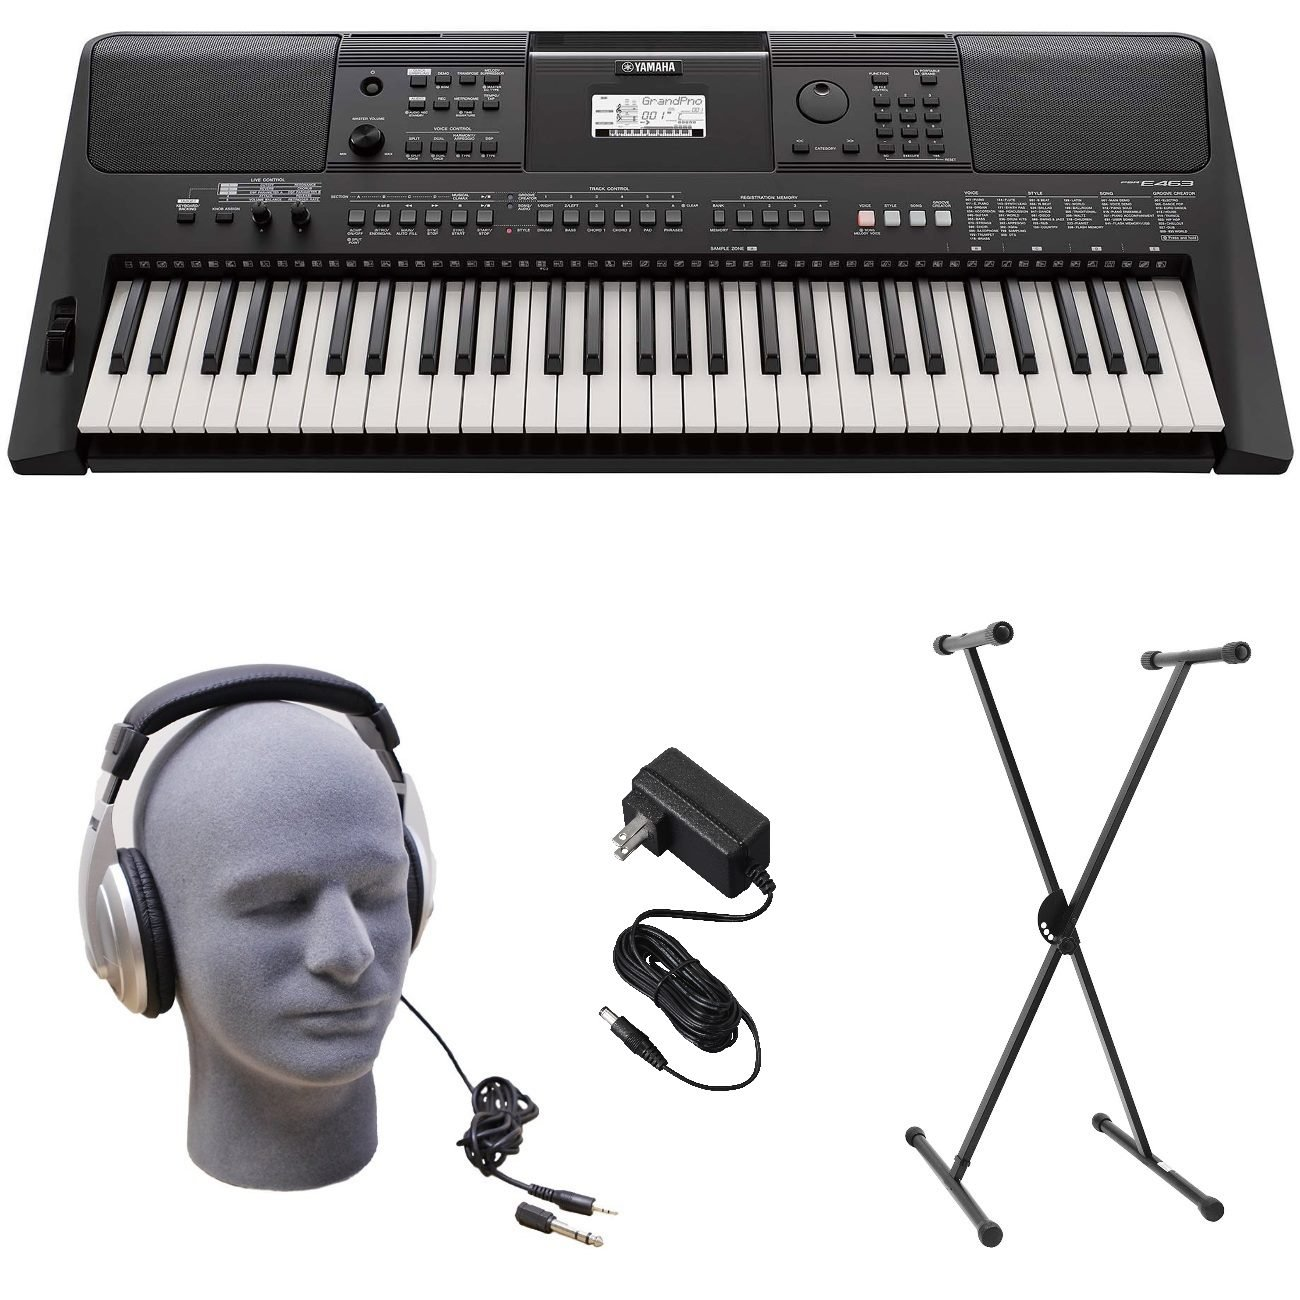 Yamaha Psr E463 Pks Premium Keyboard Pack With Power Supply X Style Stand And Headphones